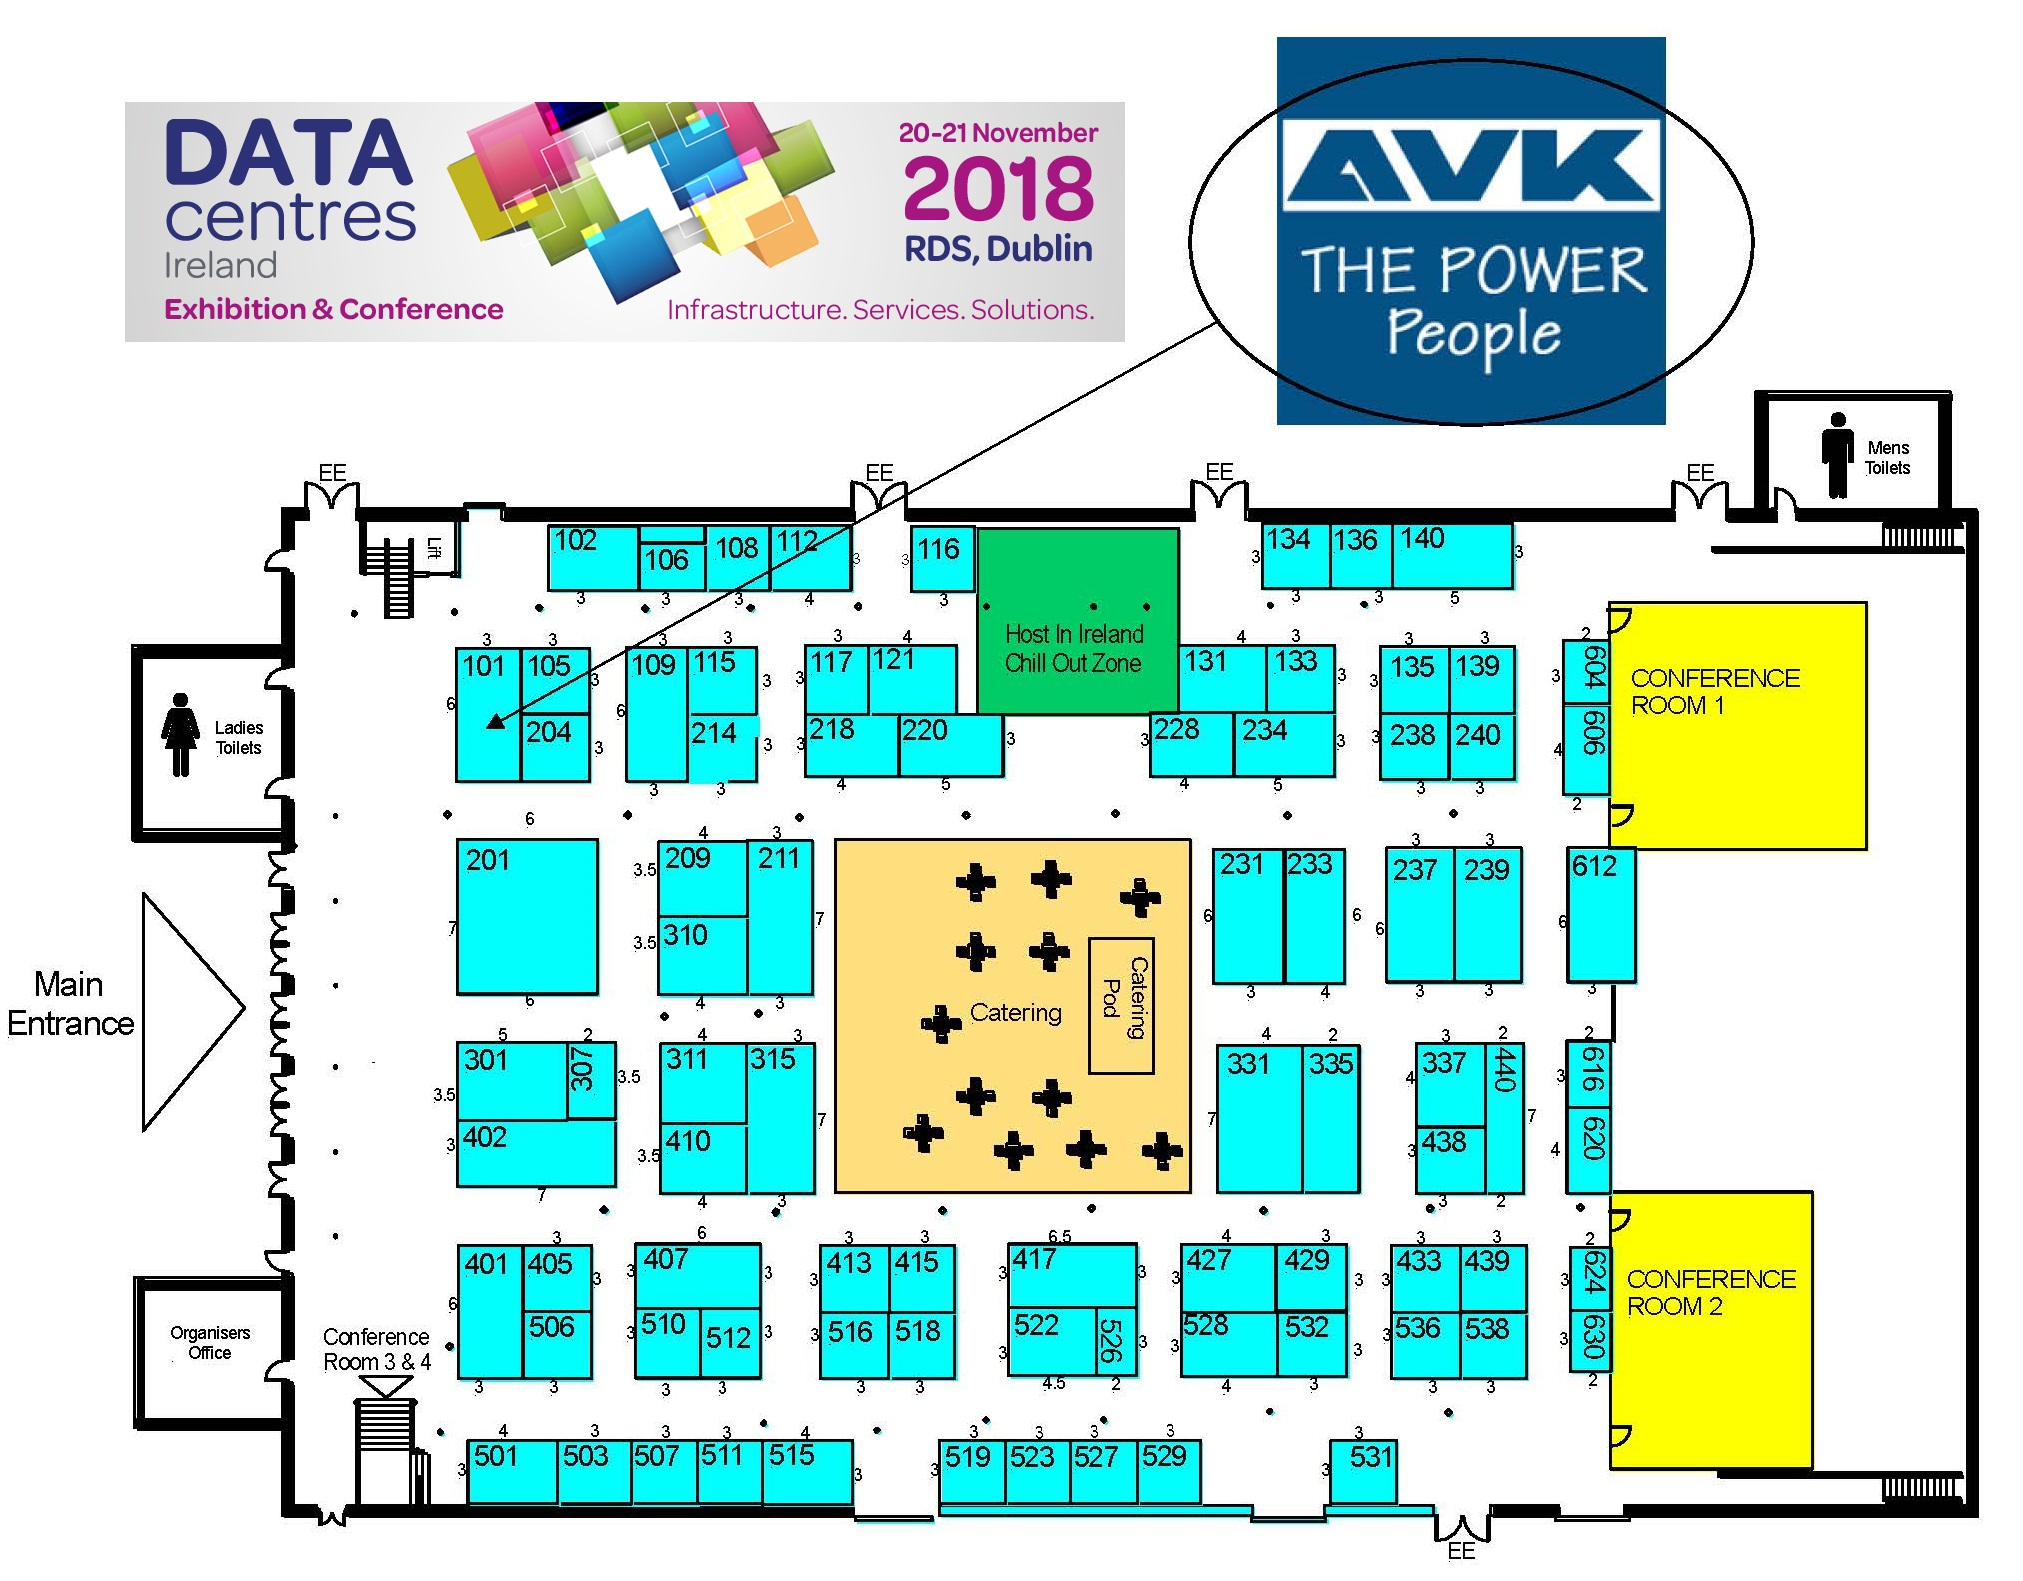 AVK to appear at Data Centres Ireland in Dublin